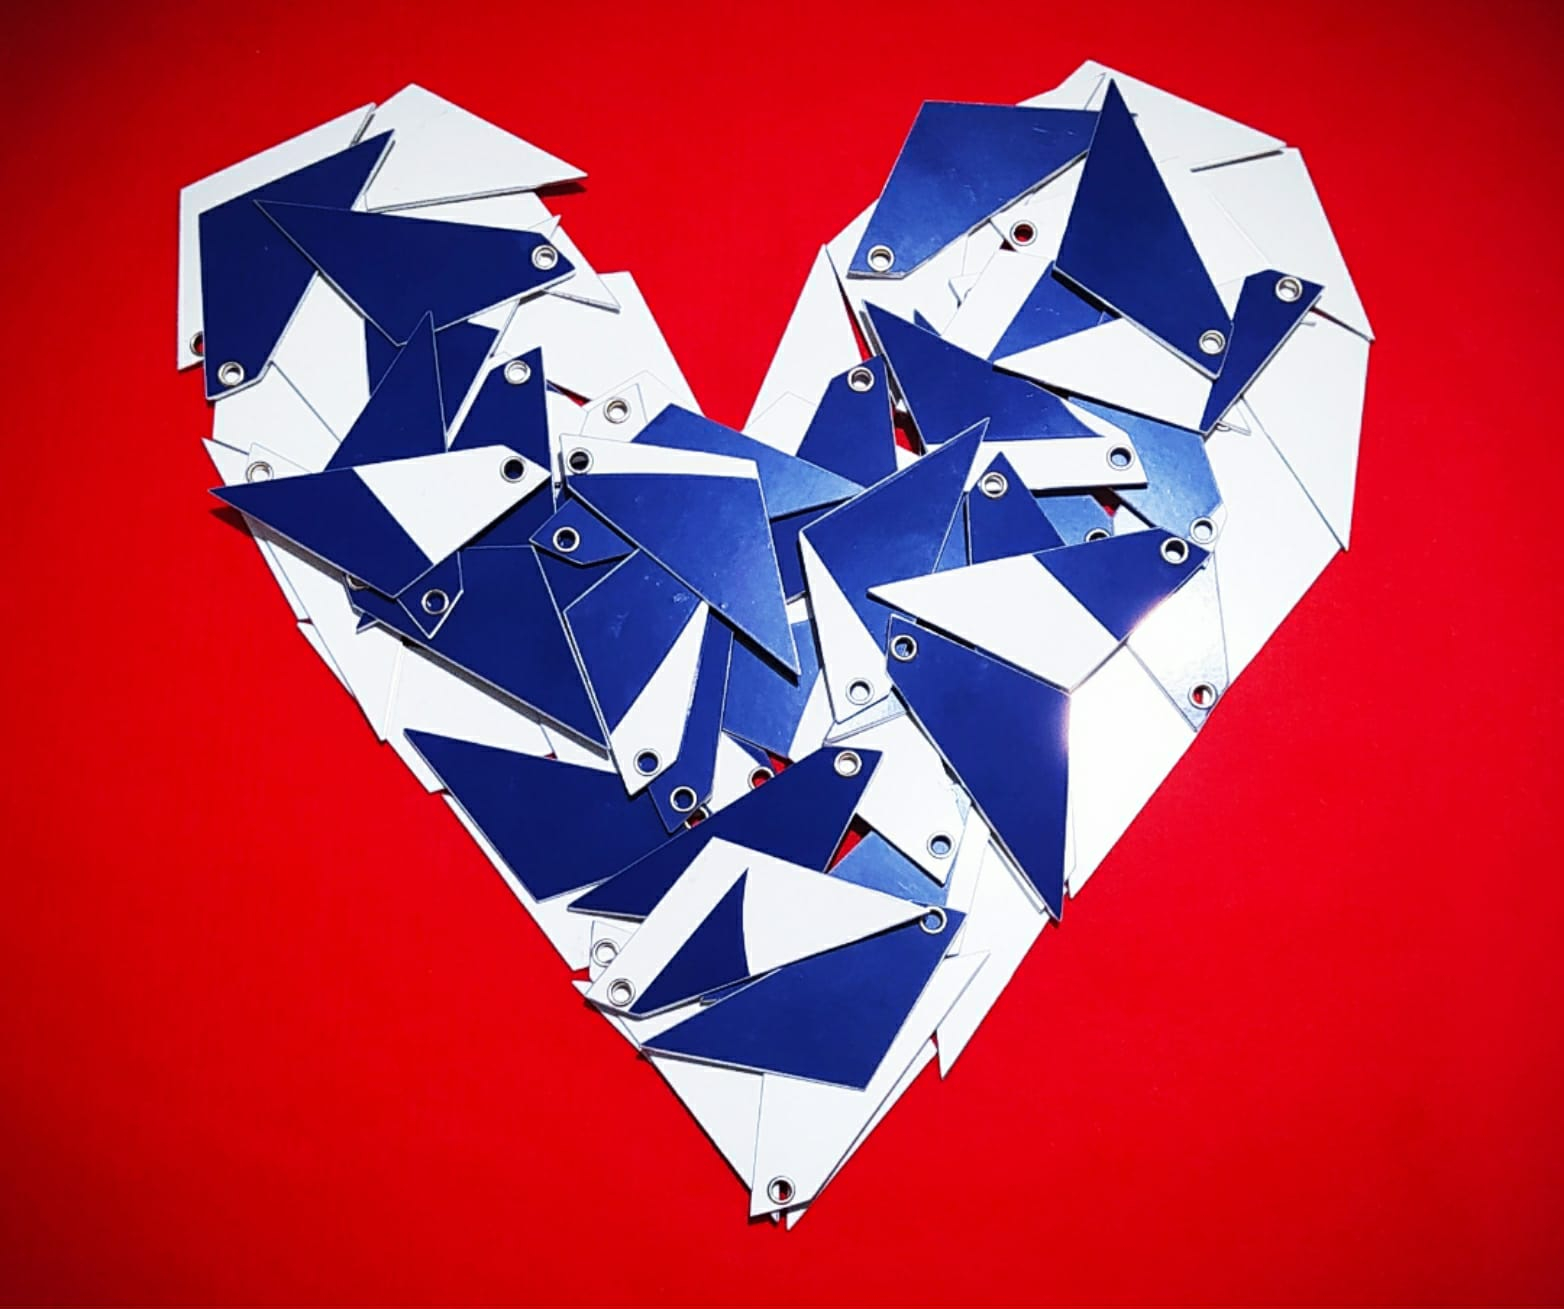 Heart made up from many Tailfins keyrings